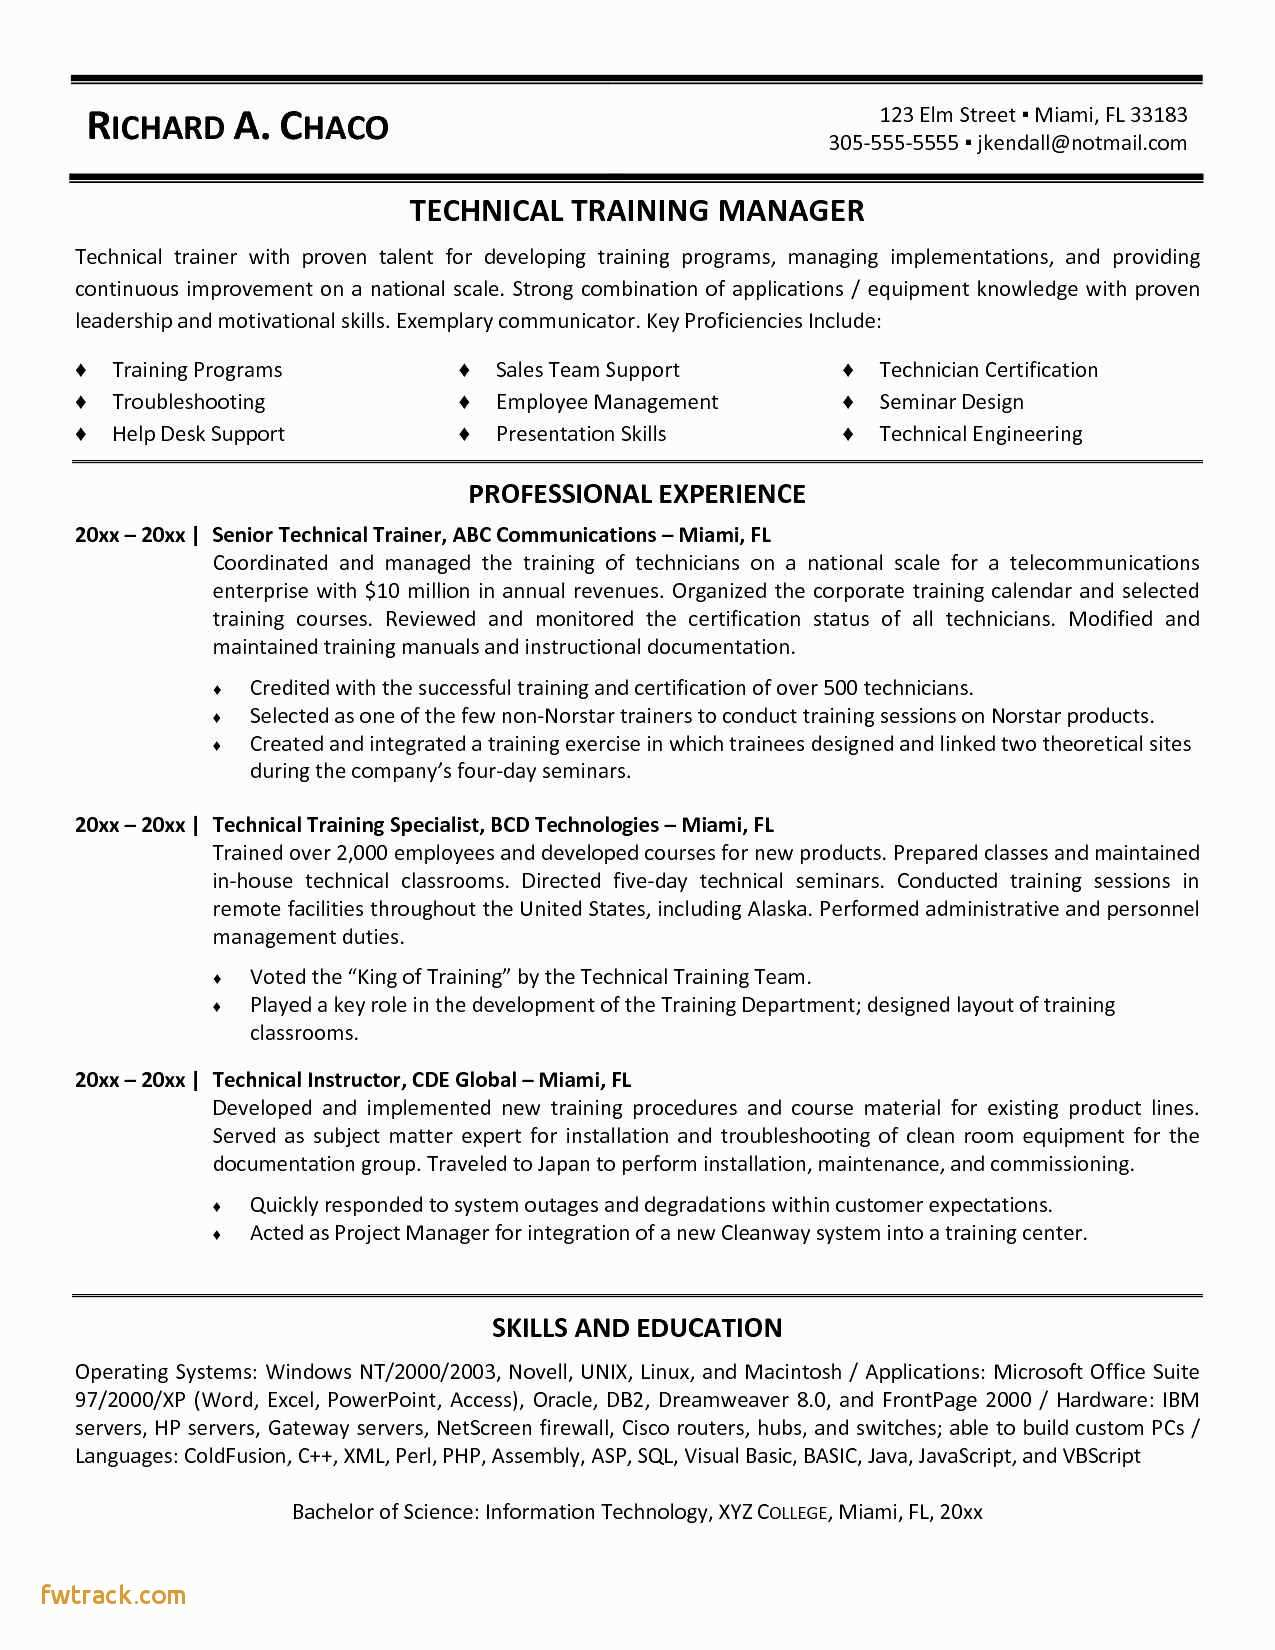 Japanese Resume Template - Winning Resume Templates Fwtrack Fwtrack